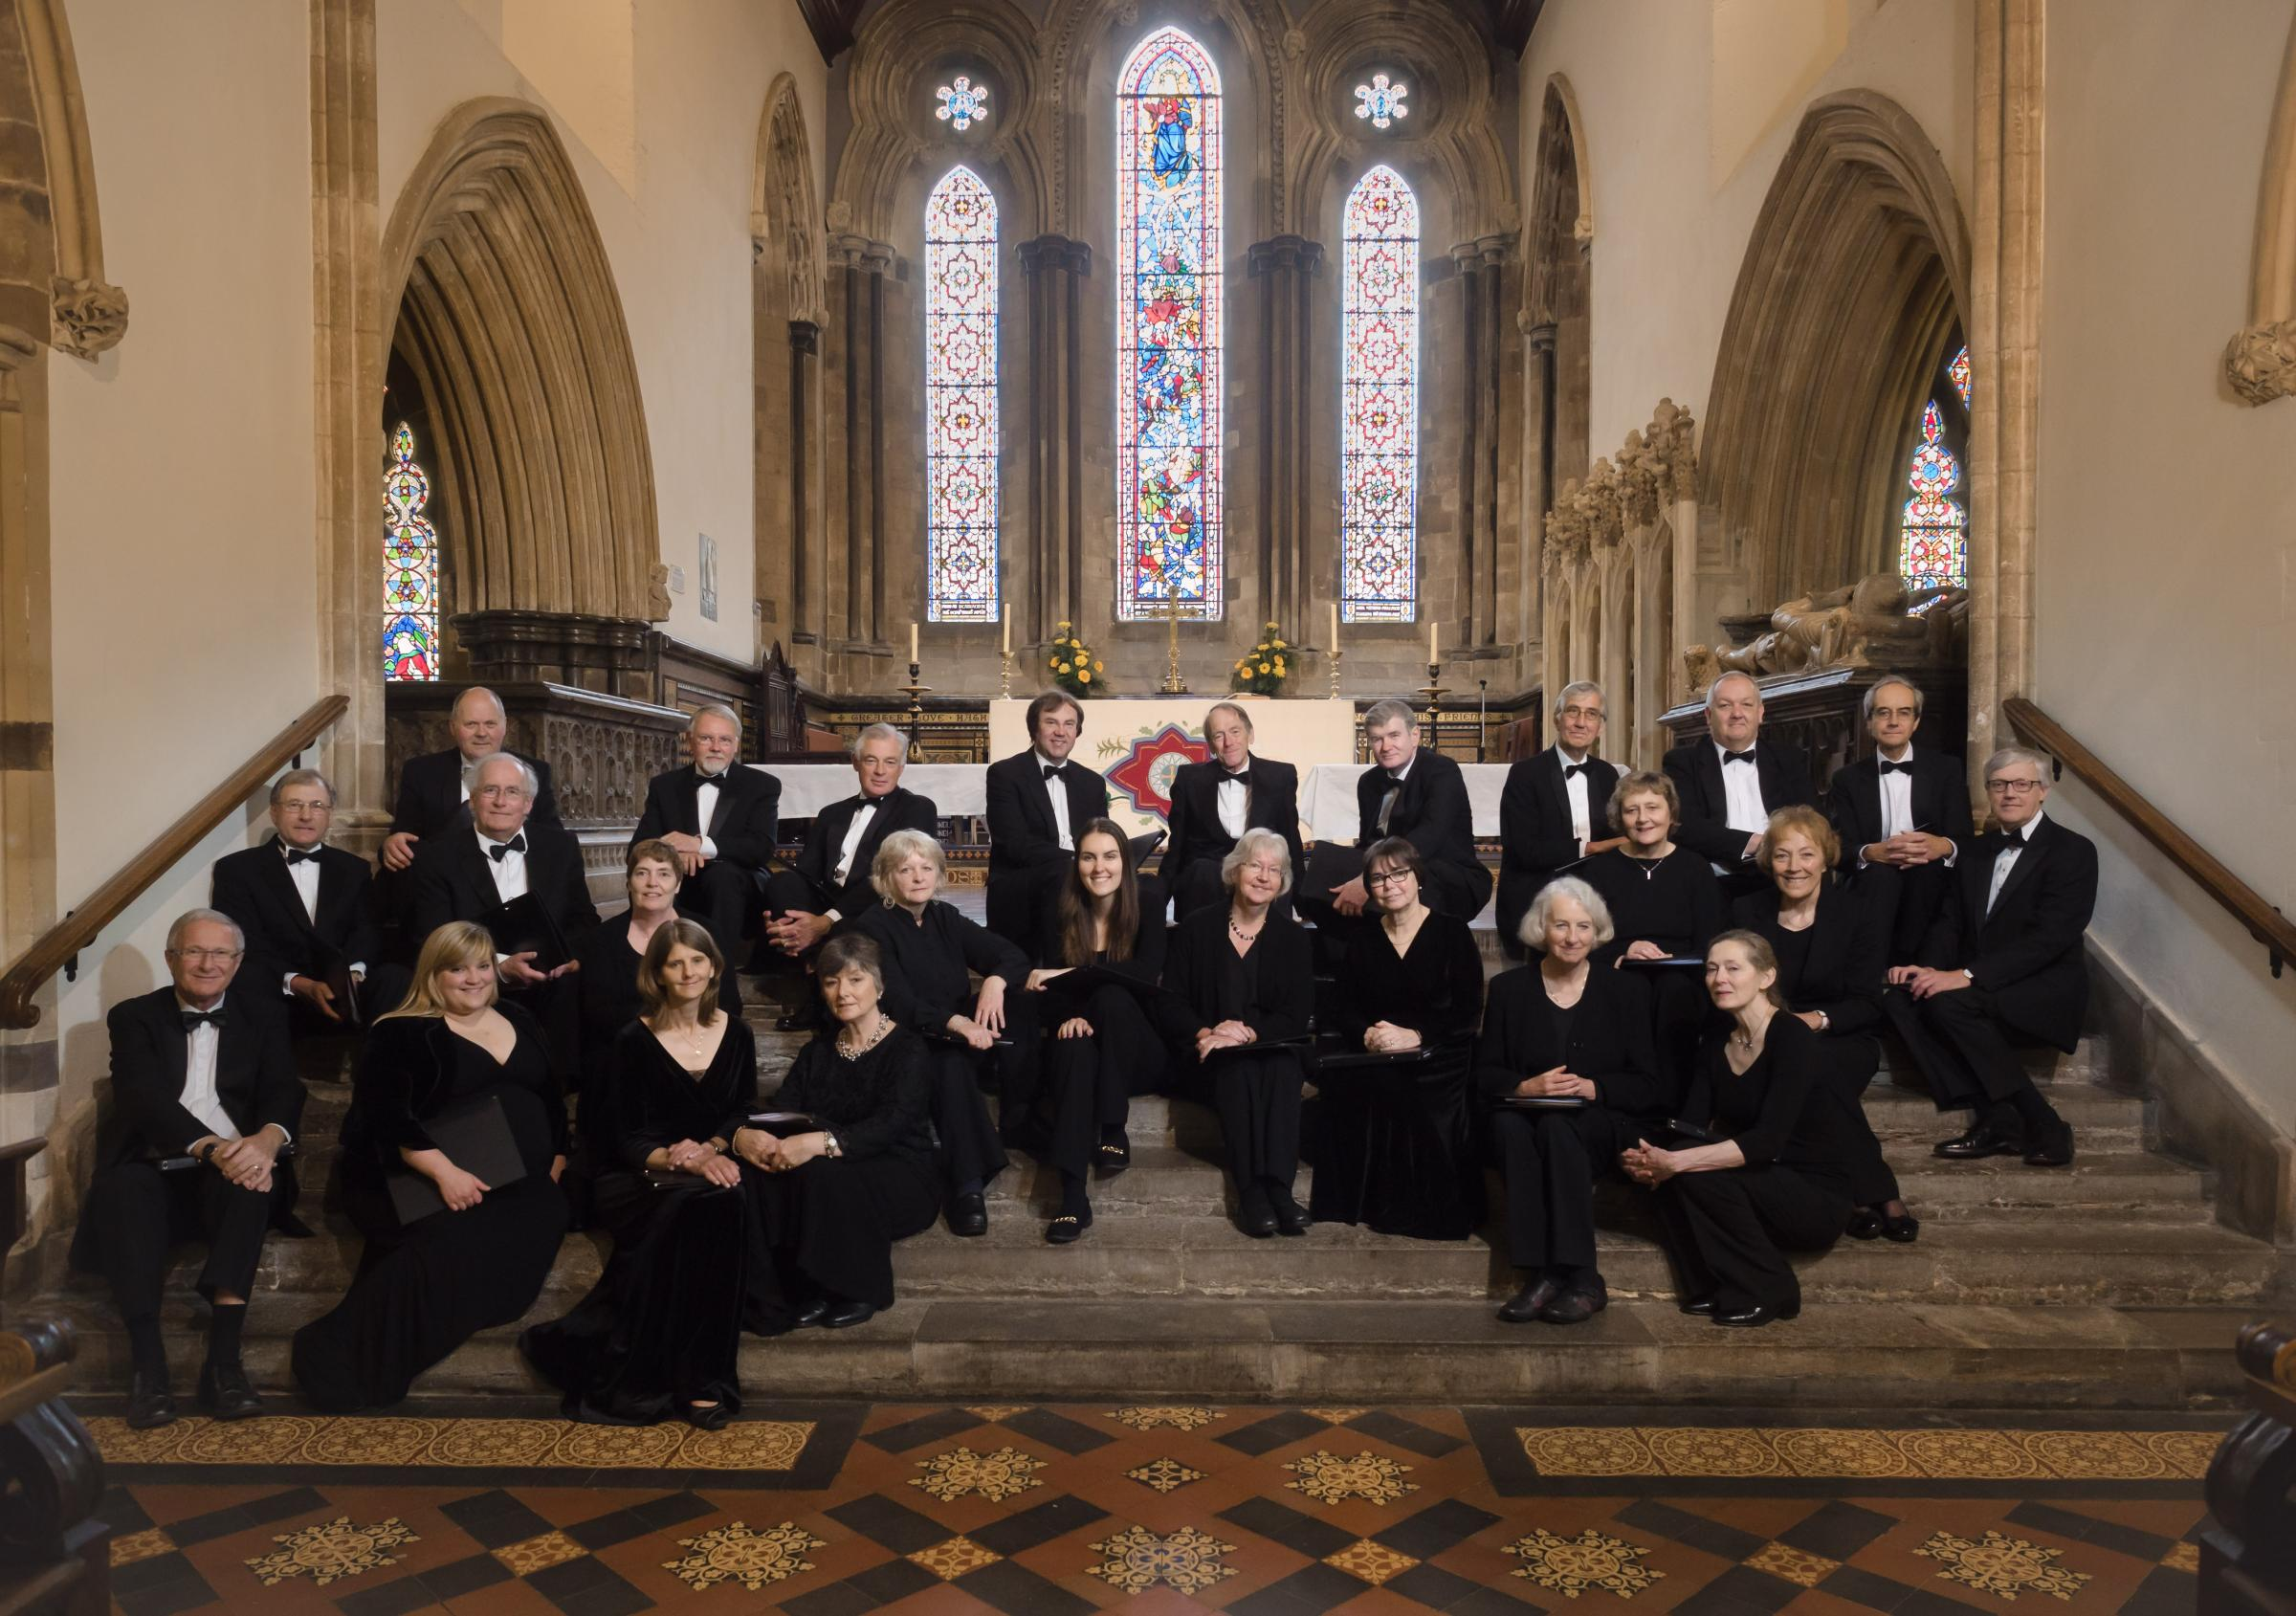 Bournemouth Sinfonietta Choir - A candlelit concert of music for Holy Week